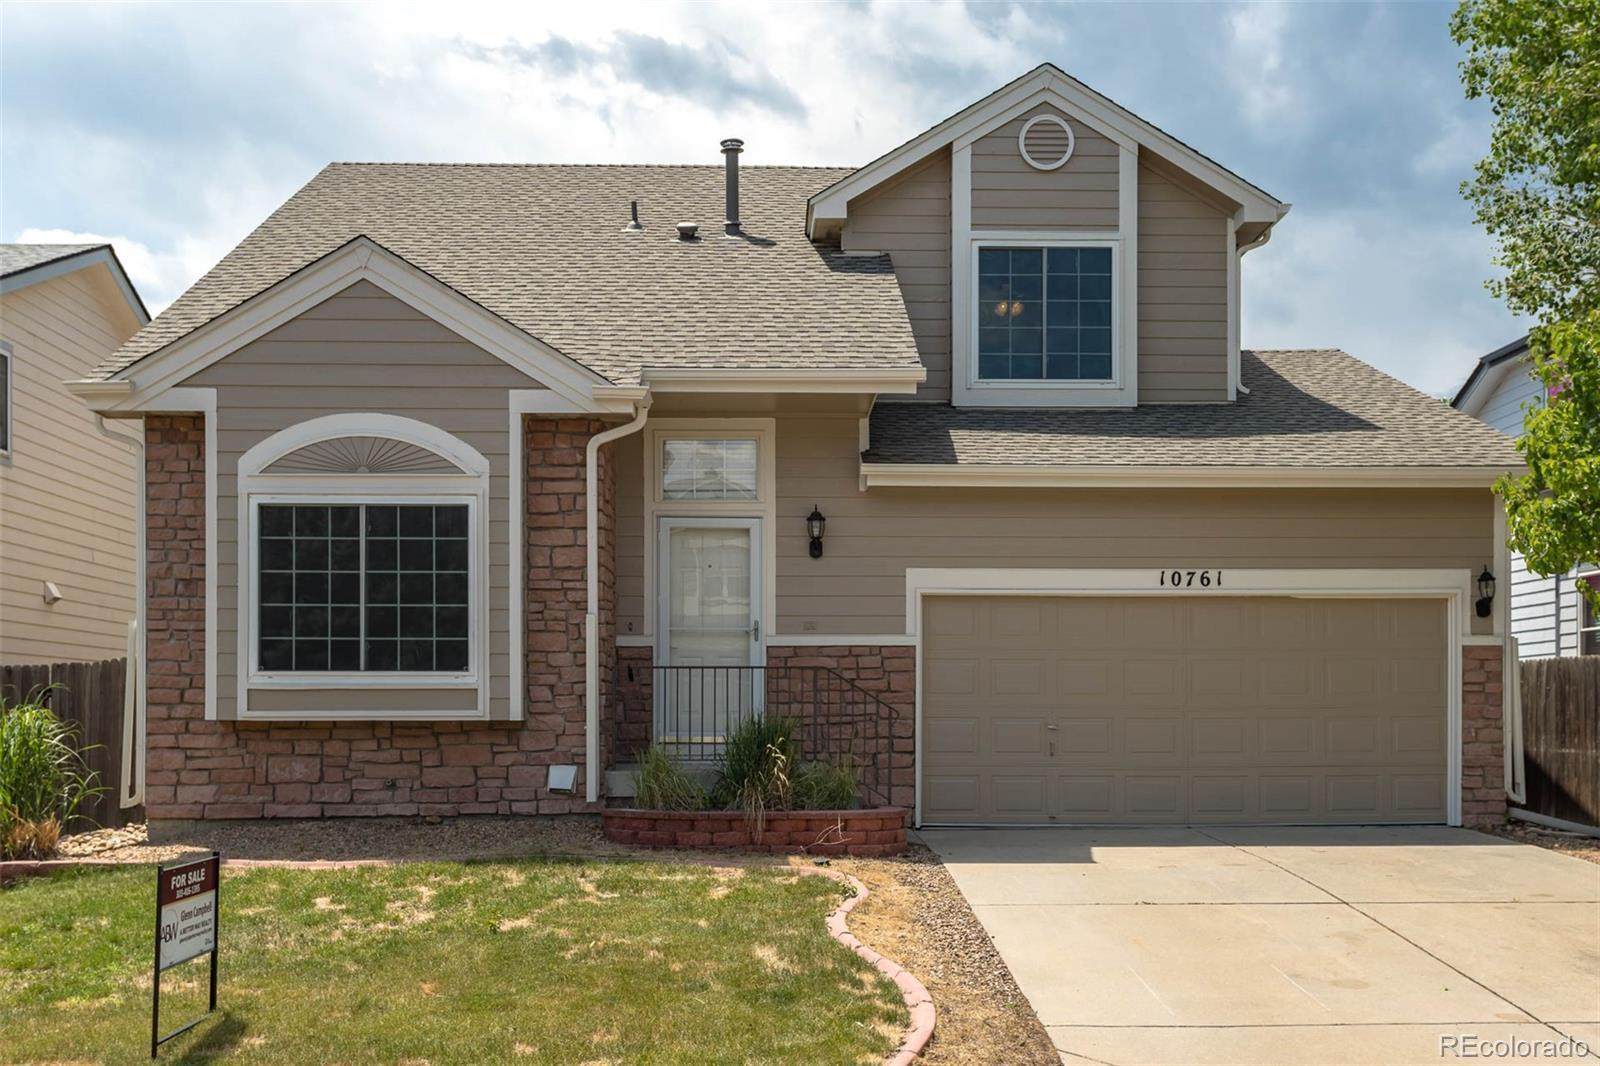 10761 W 107th Circle, Westminster, CO 80021 - #: 9595331